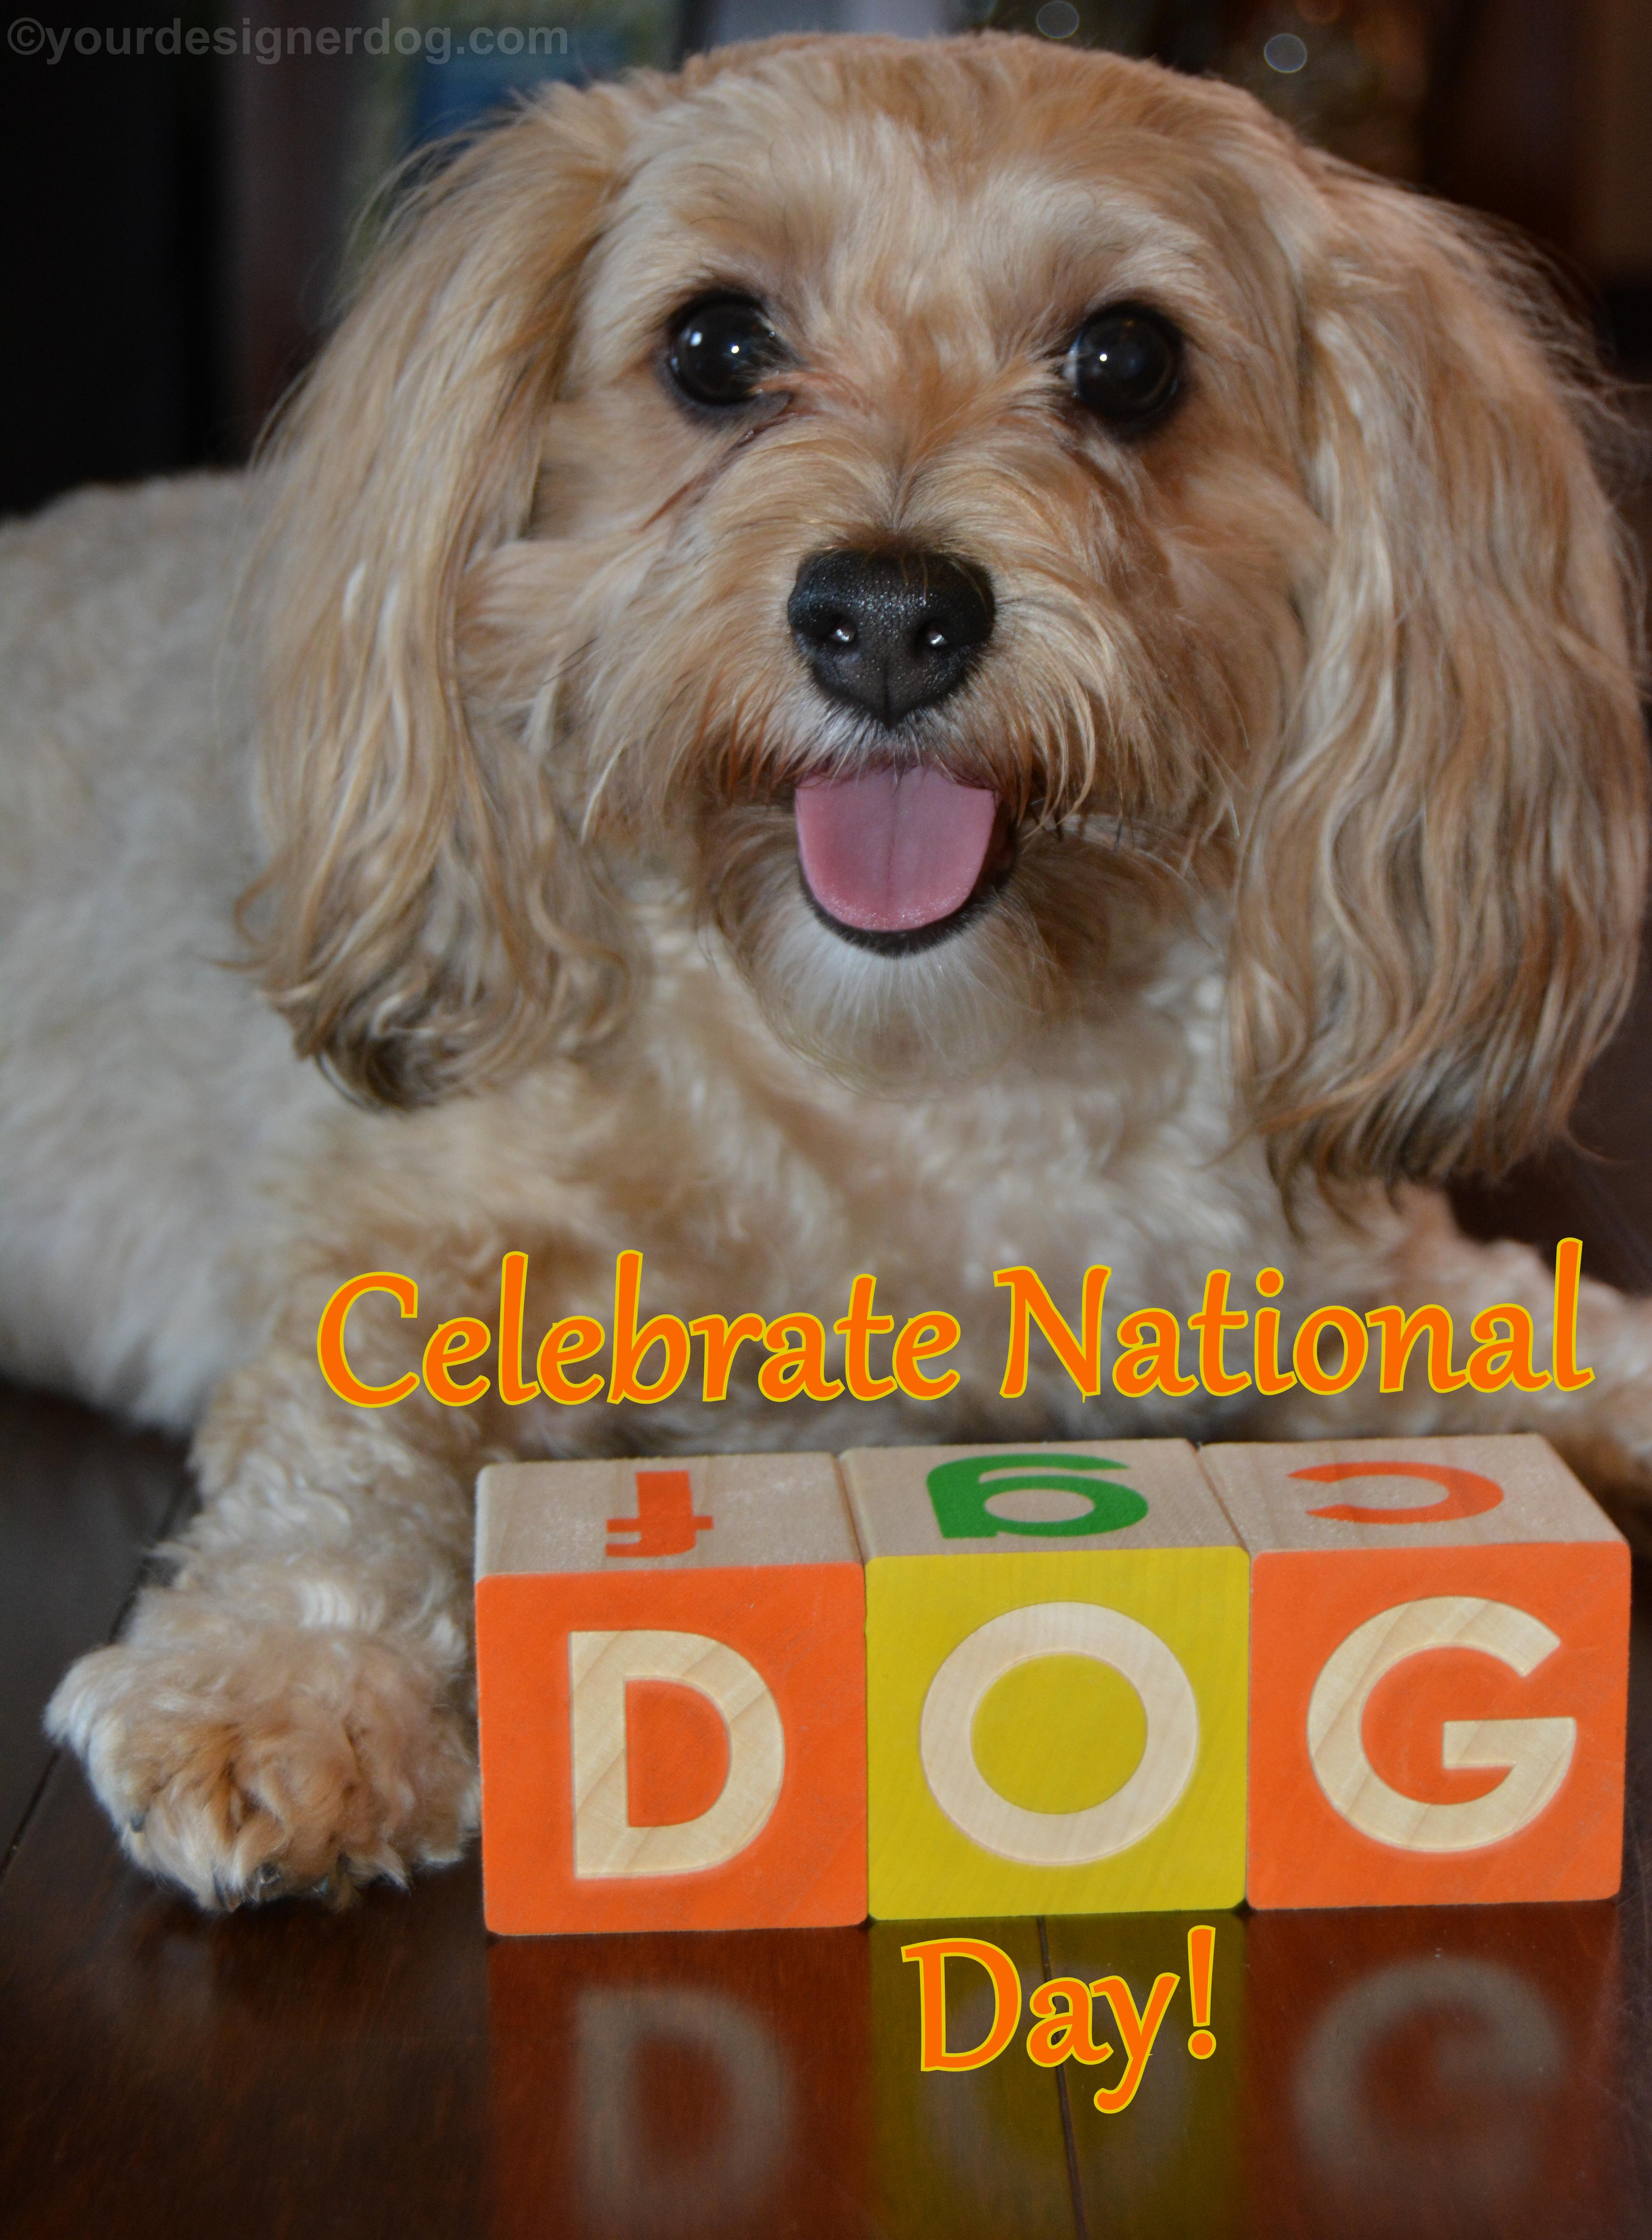 Celebrate National Dog Day!